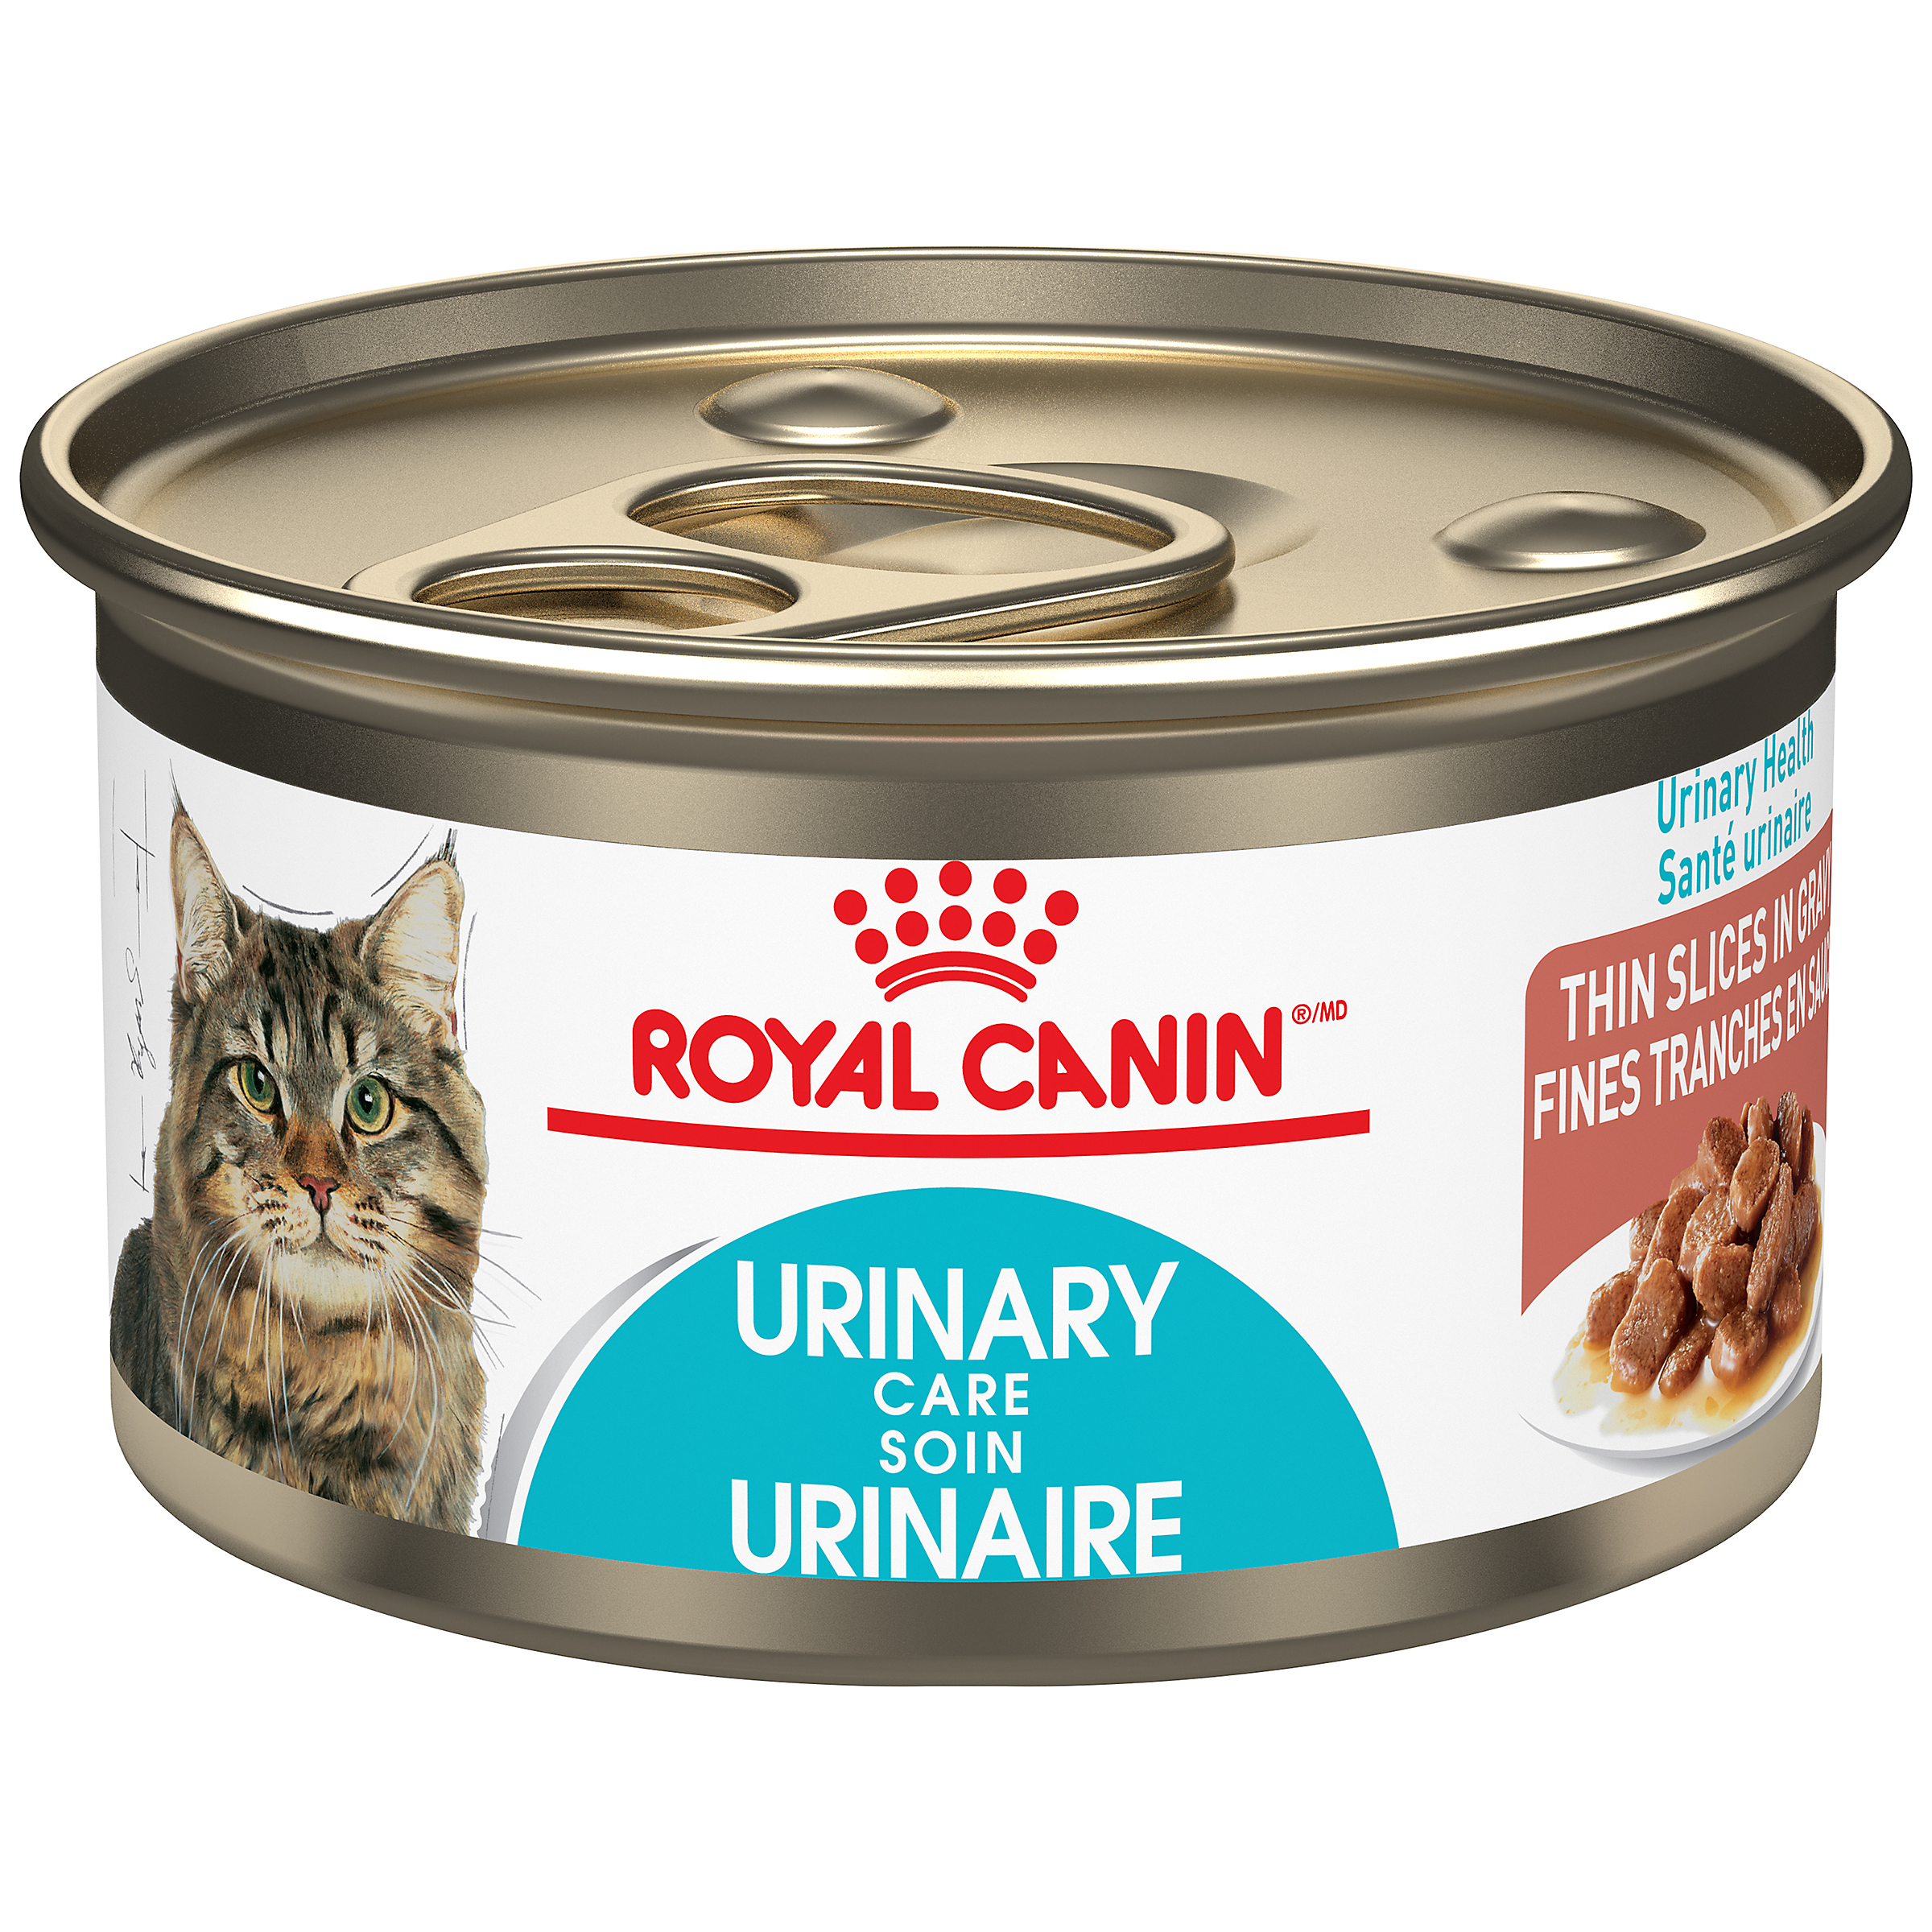 Royal Canin Feline Care Nutrition Urinary Care Thin Slices in Gravy Wet Cat Food, 85-gm